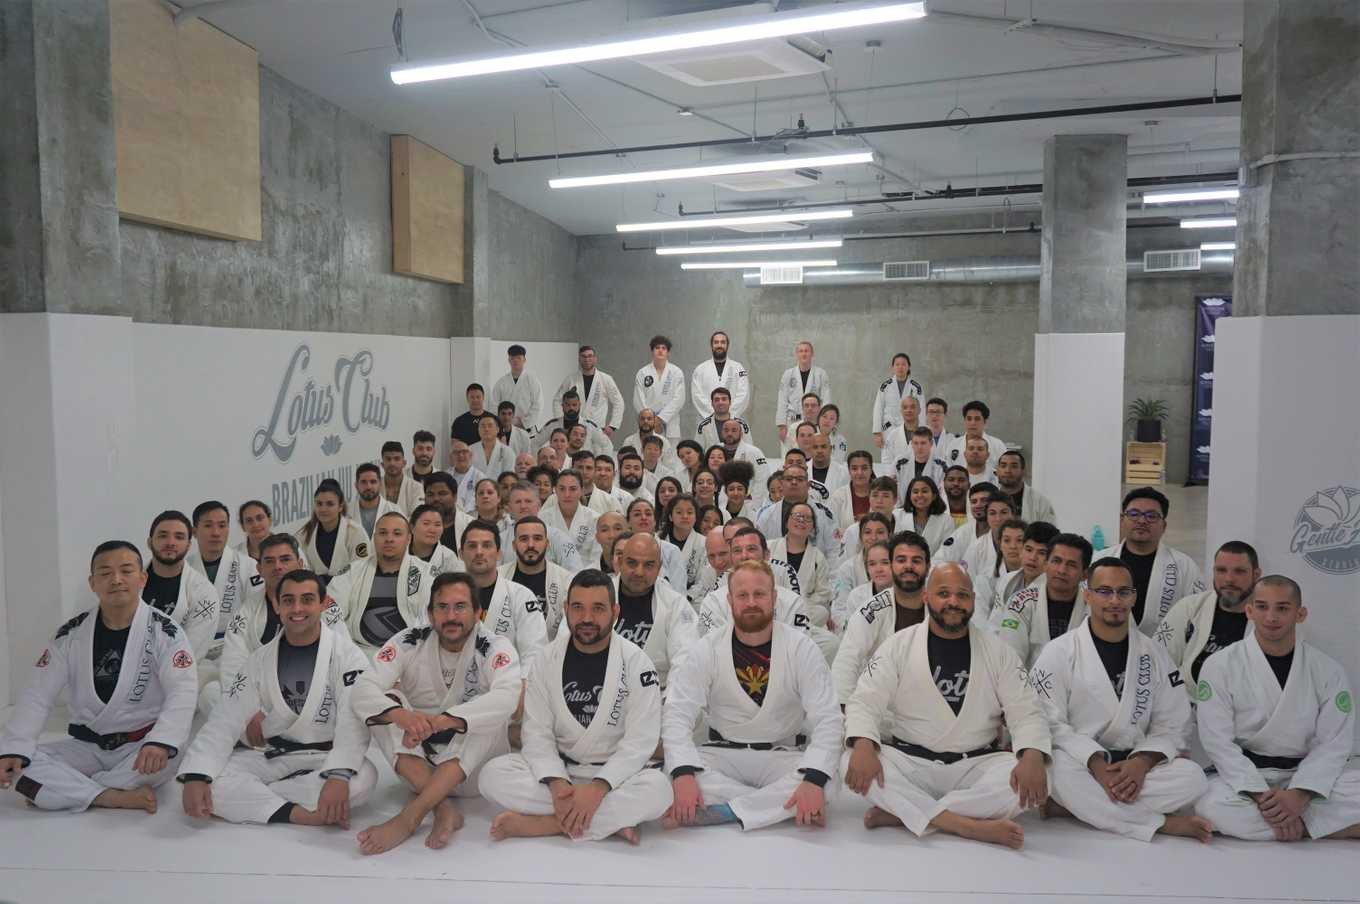 Lotus Club x AT Jiu-Jitsu NYC